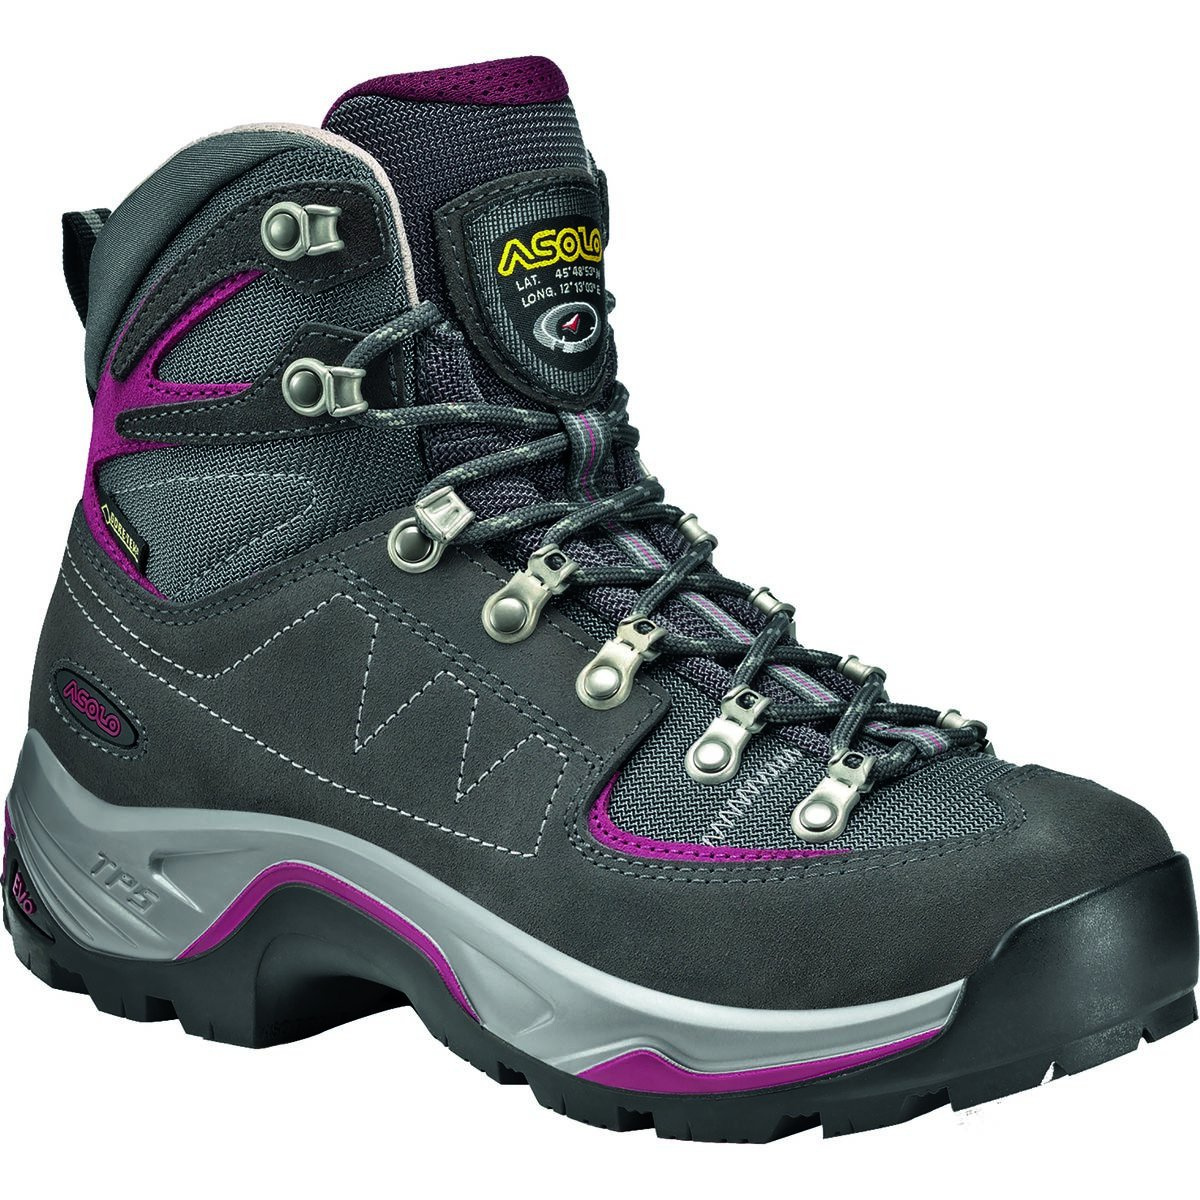 Asolo TPS Equalon GV Backpacking Boot - Women's B00WE3NWZ6 7 B(M) US|Graphite/Red Bud